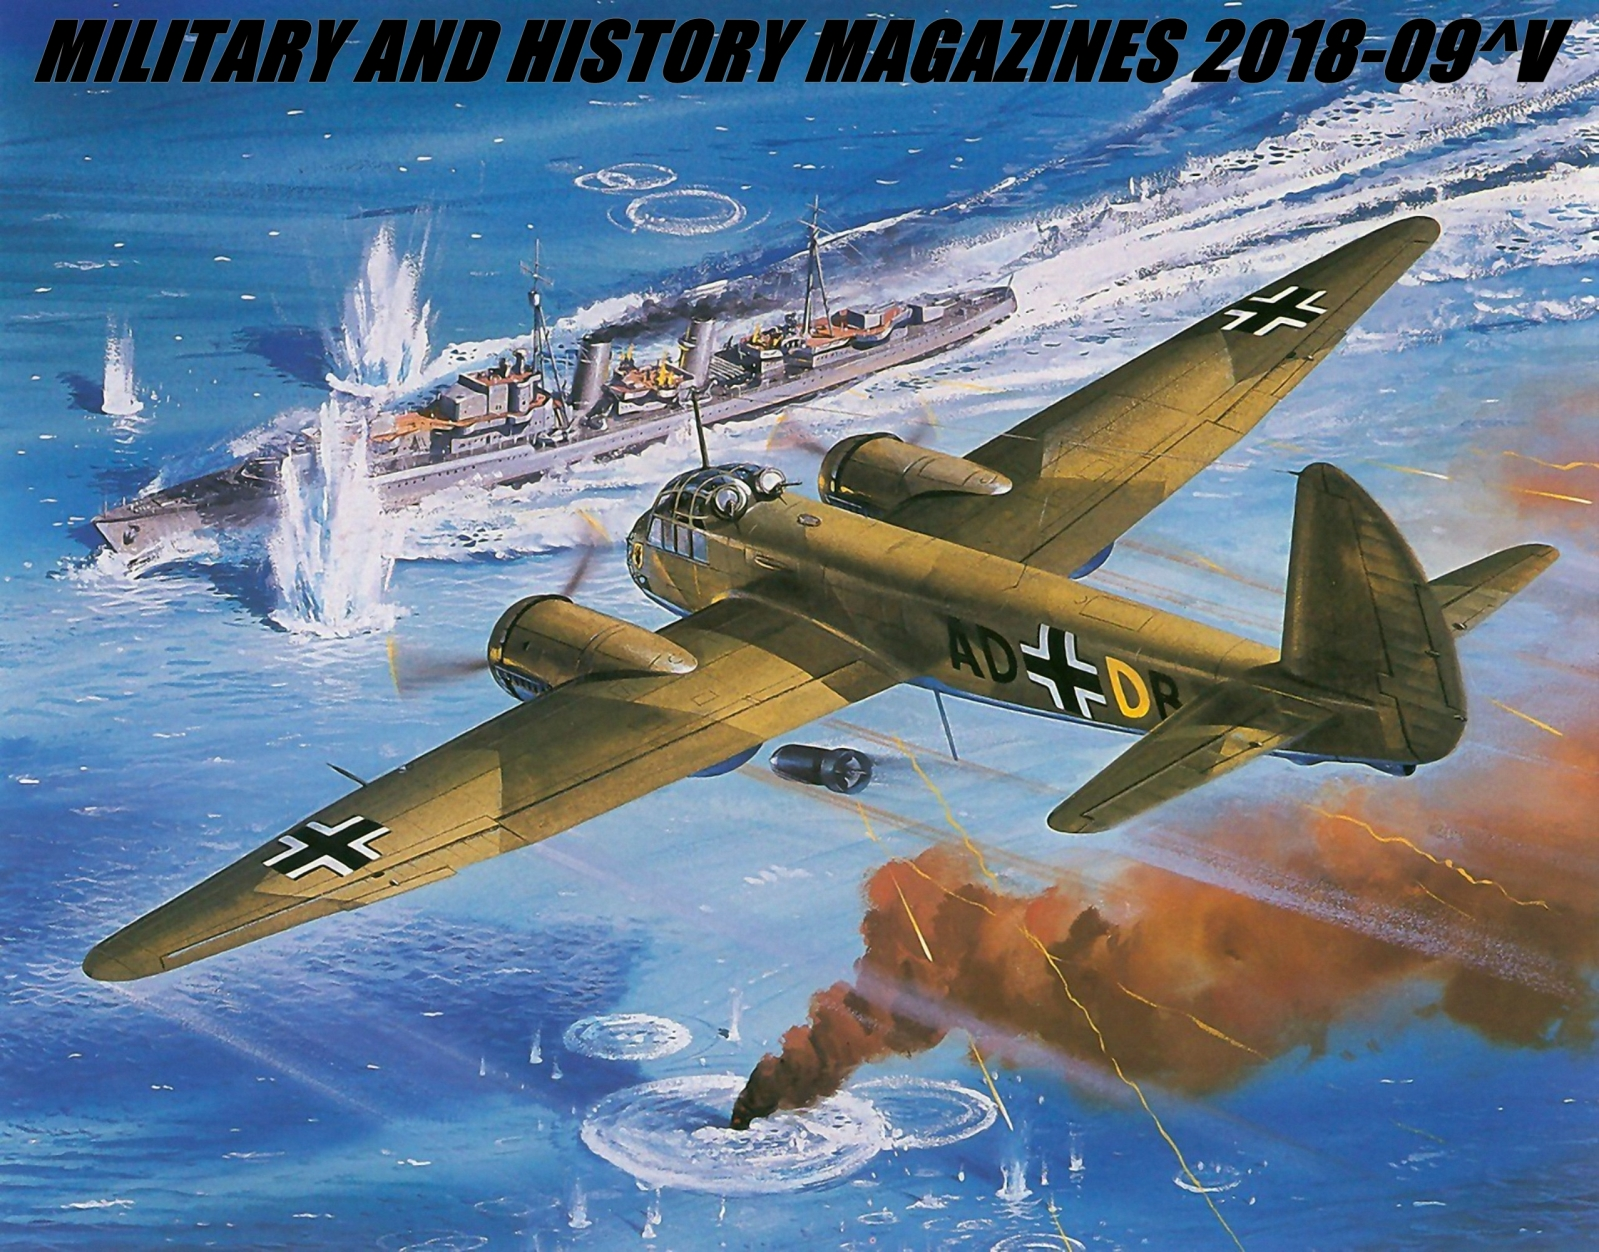 Military and History Magazines 2018-09